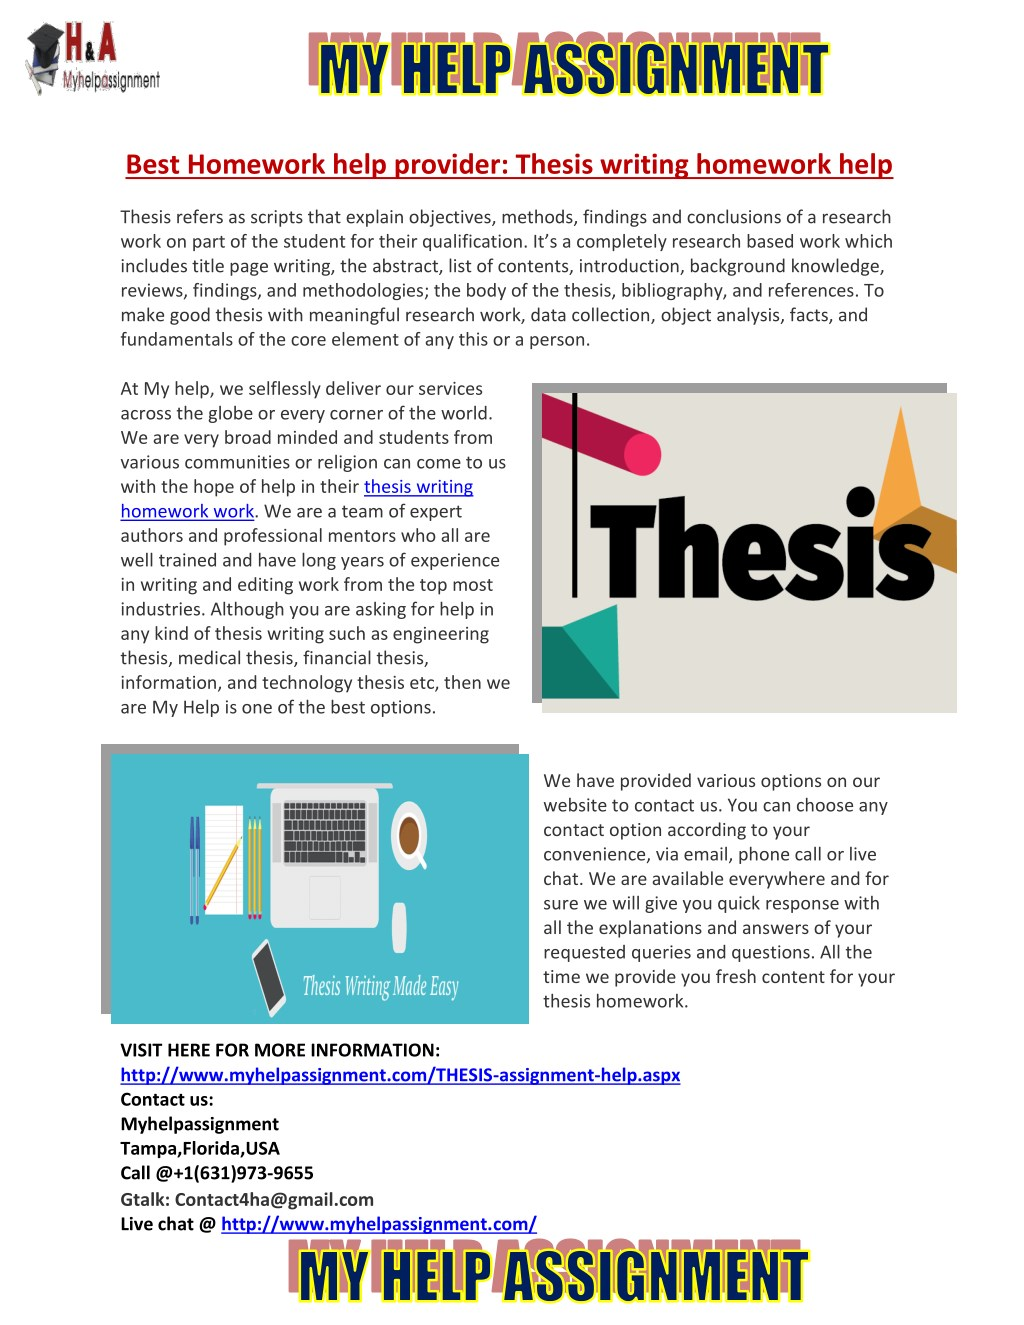 thesis writing made easy